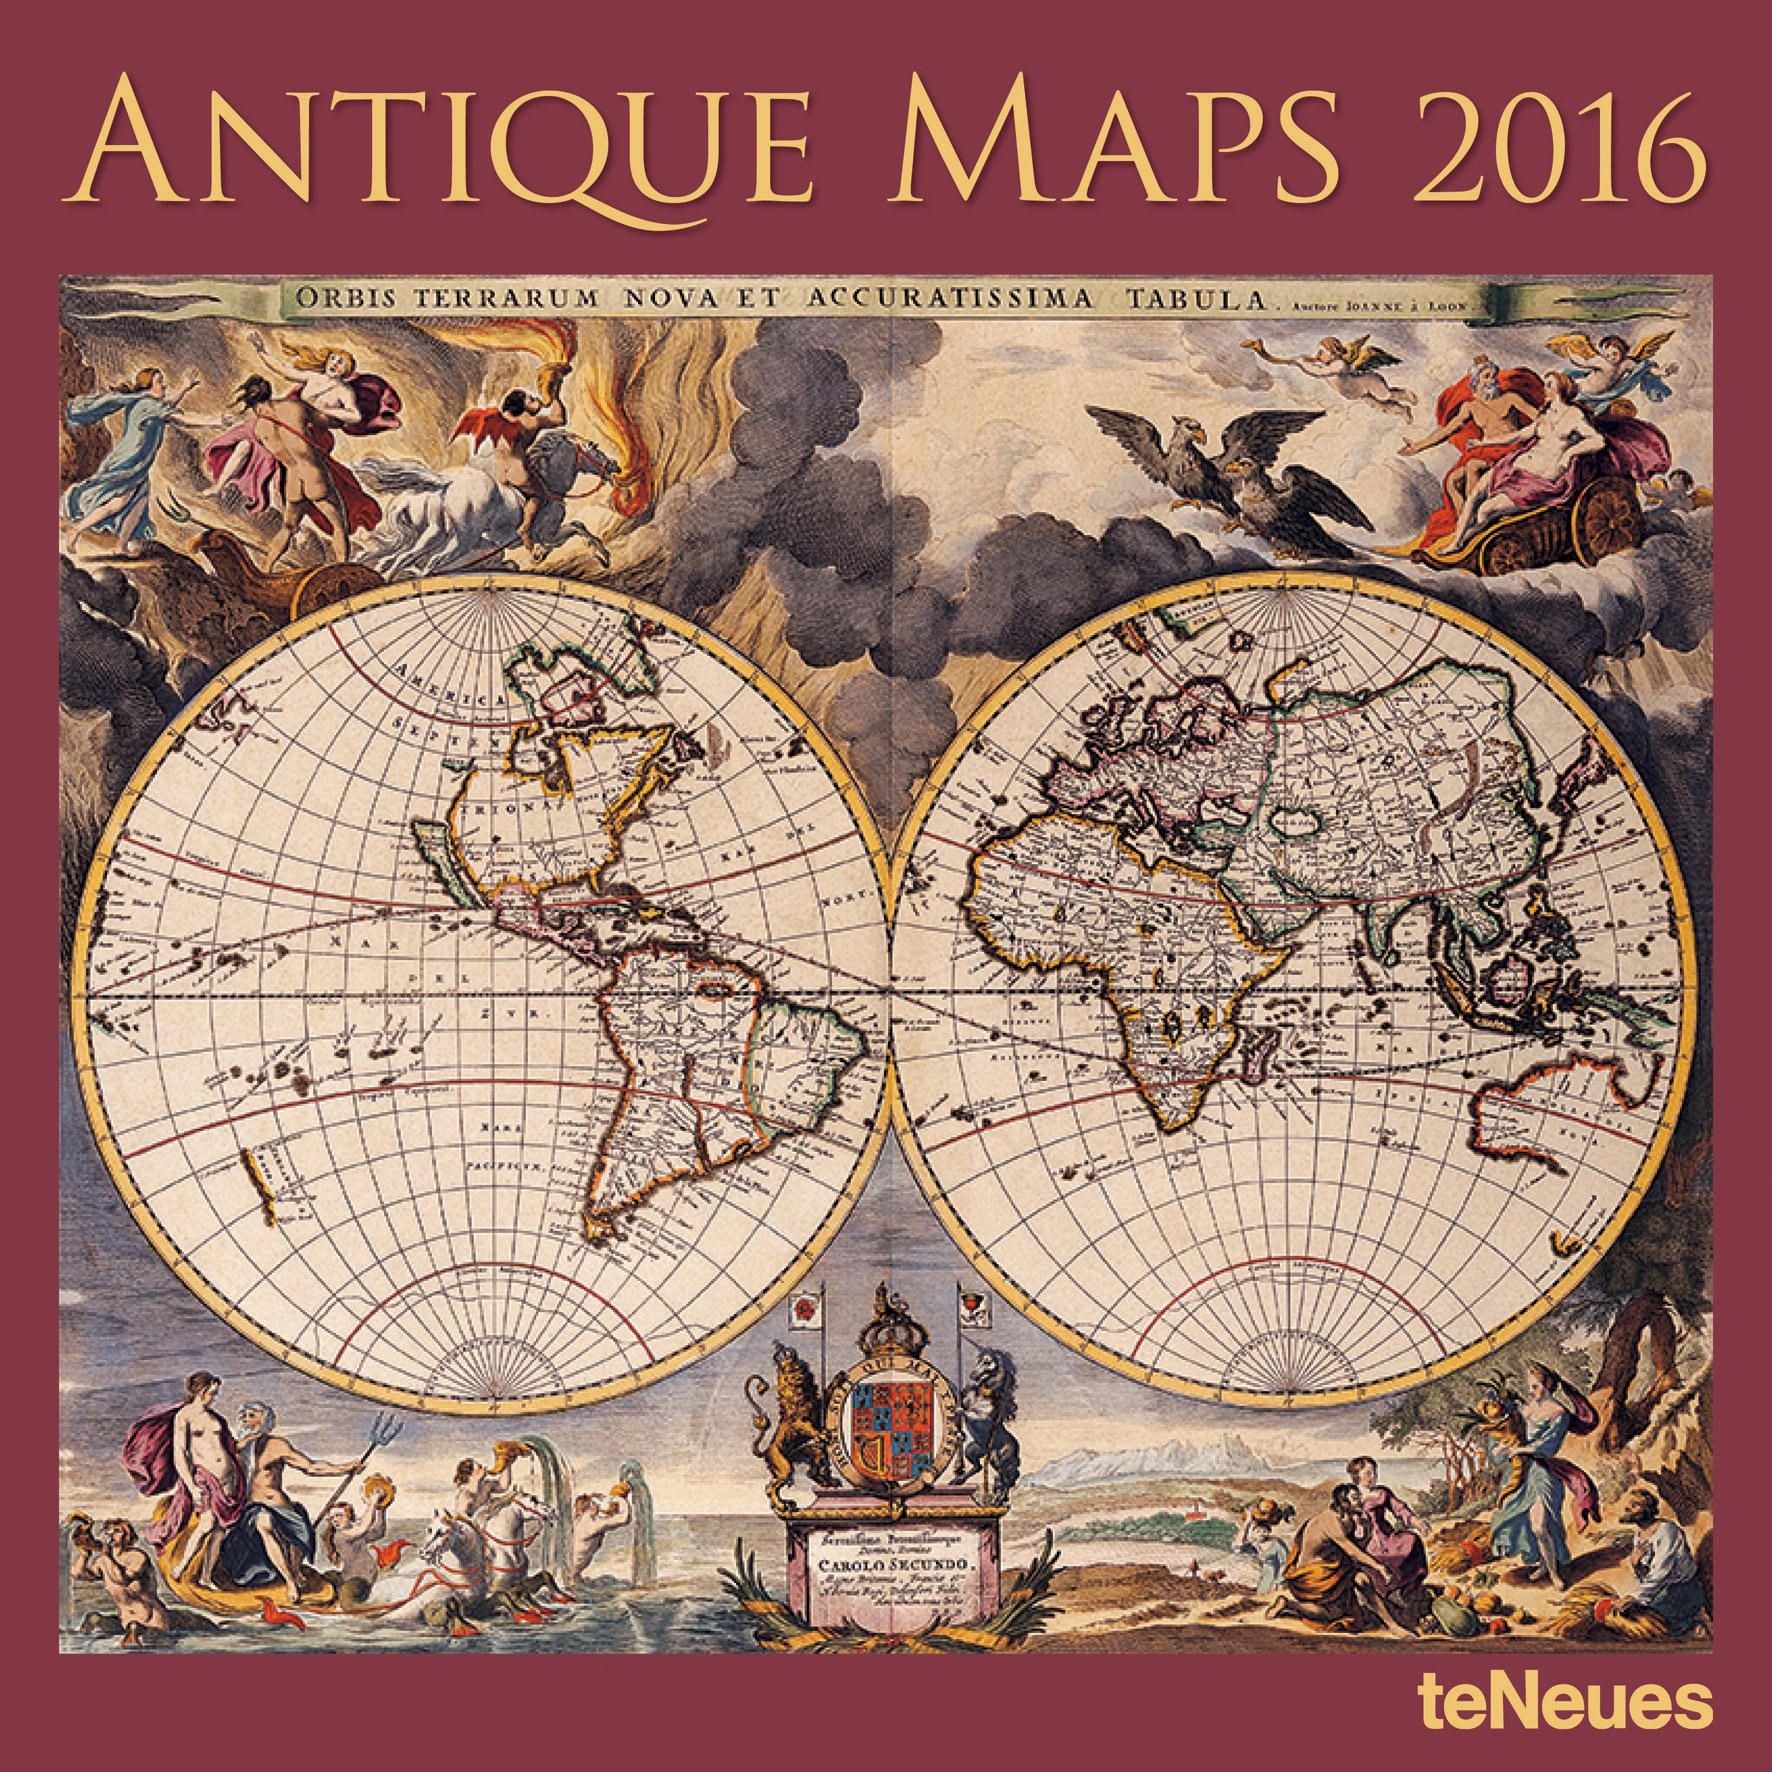 2016 antique maps wall calendar amazon teneues publishing books gumiabroncs Gallery